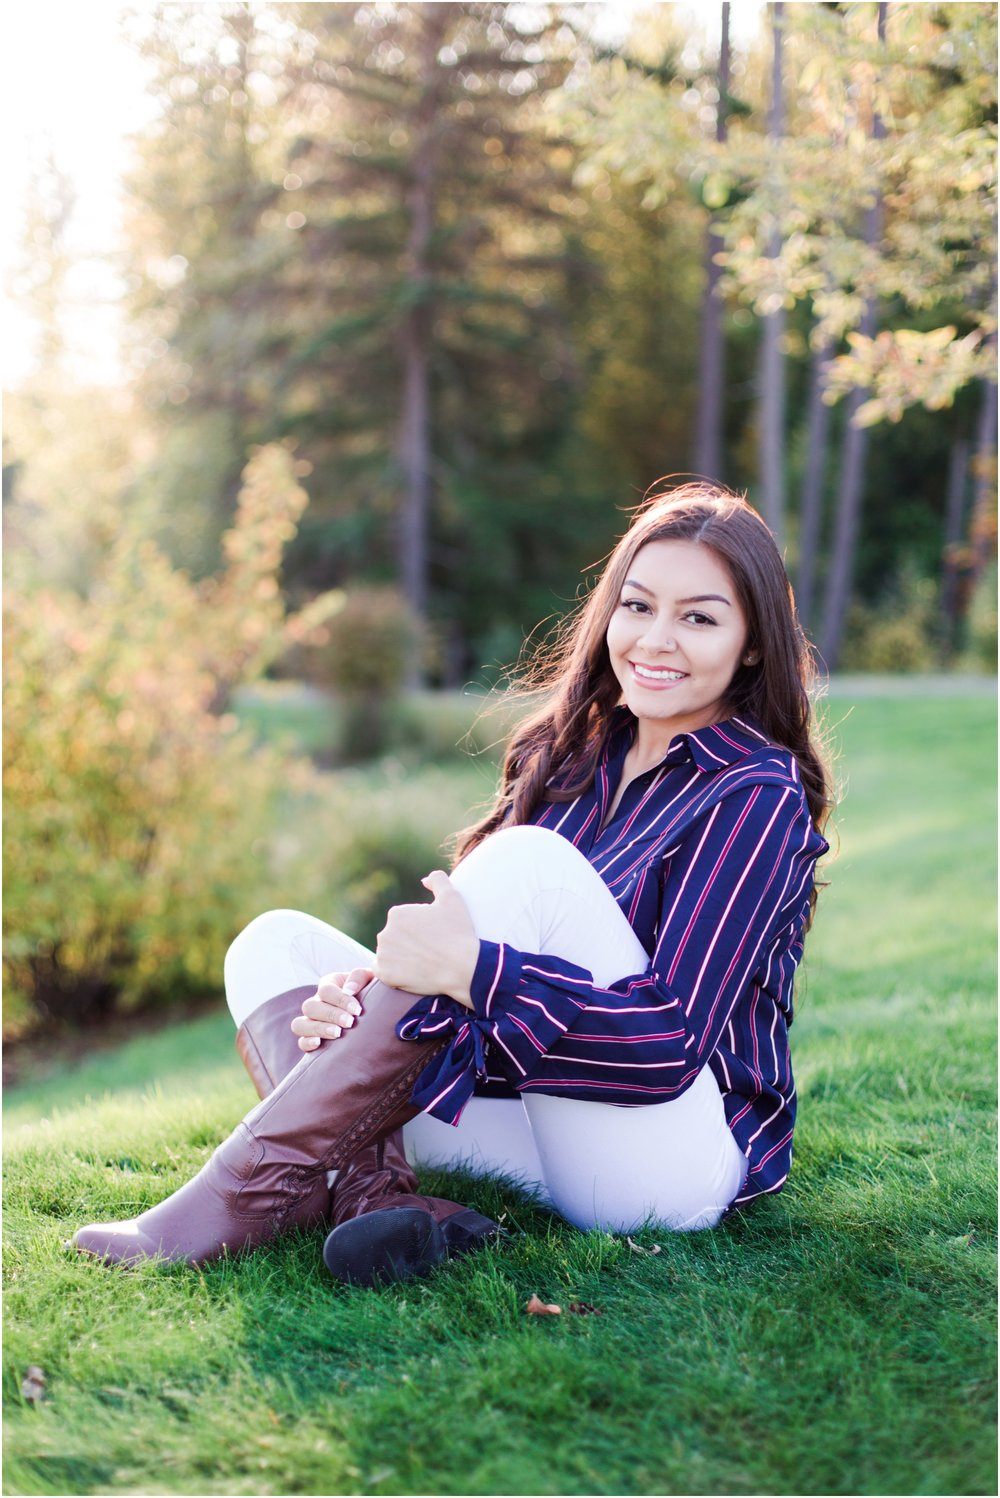 High School Senior portriats by Briana Calderon Photography based in the Greater Seattle & Tacoma, WA_0942.jpg